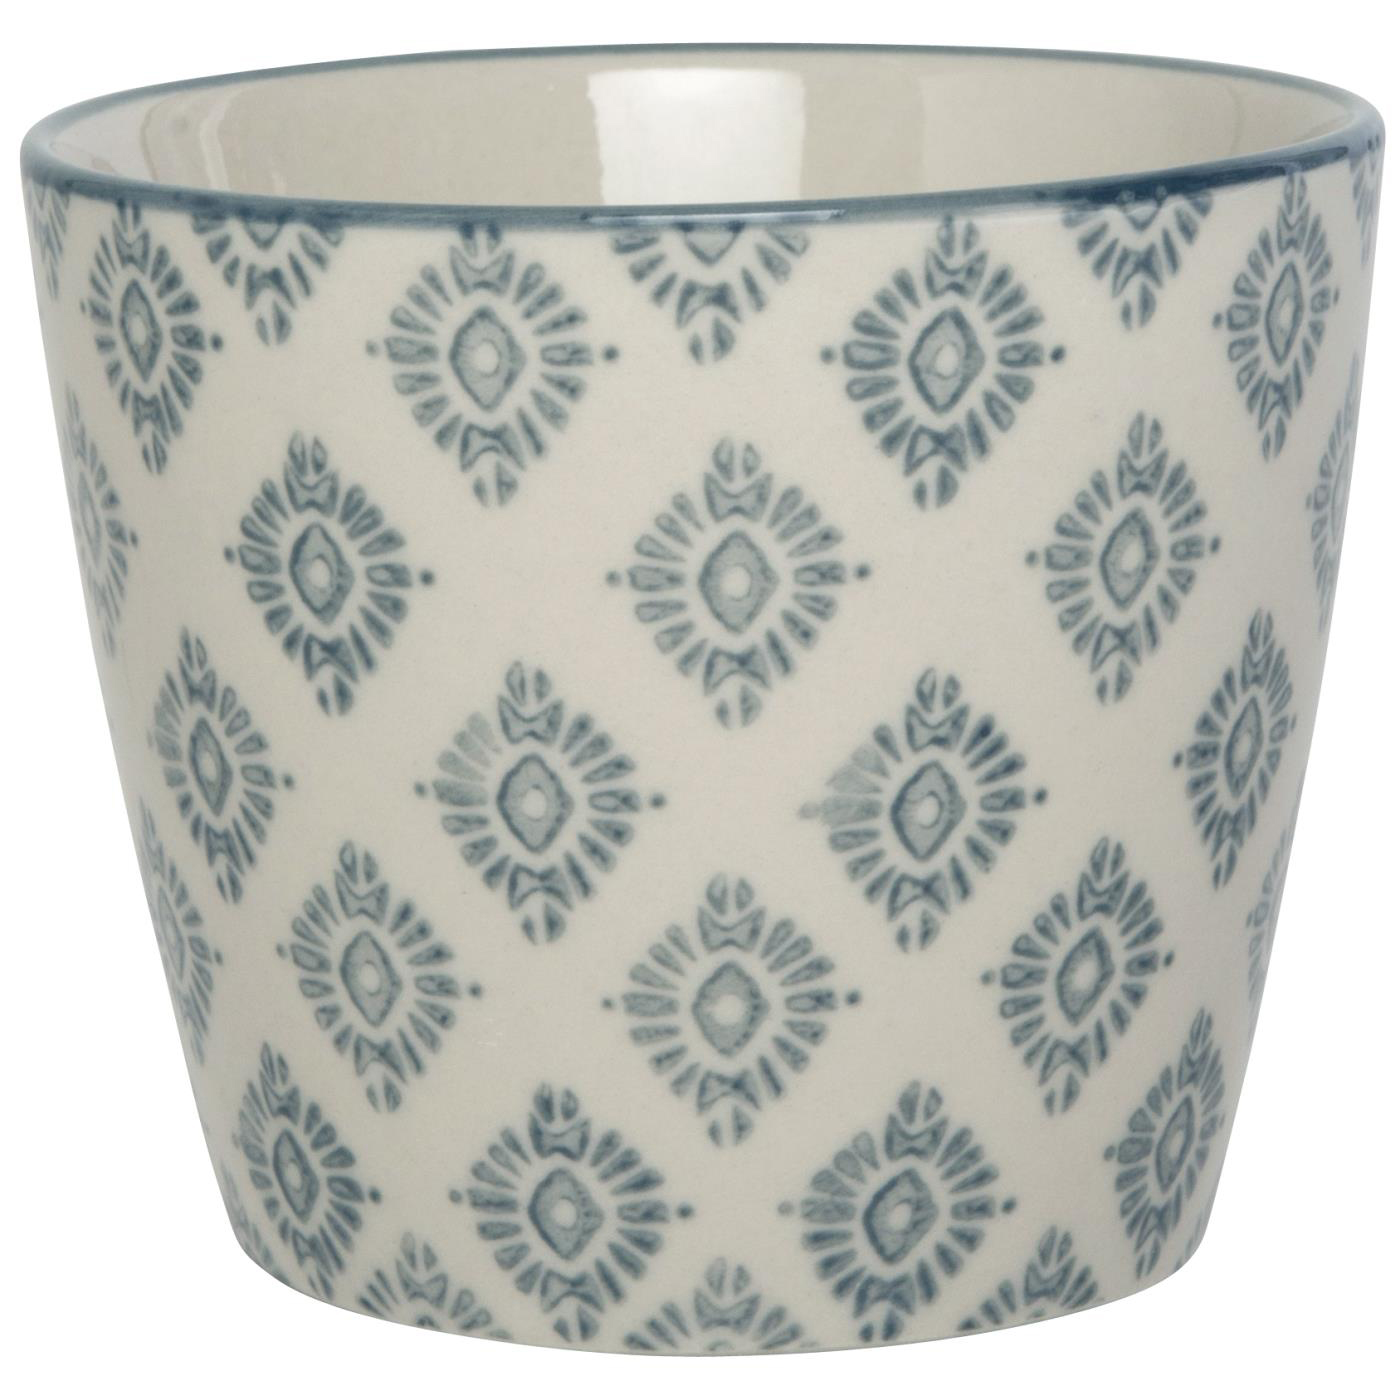 Becher gross - mit grauem Ornament - Muster C - Casablanca - IB Laursen